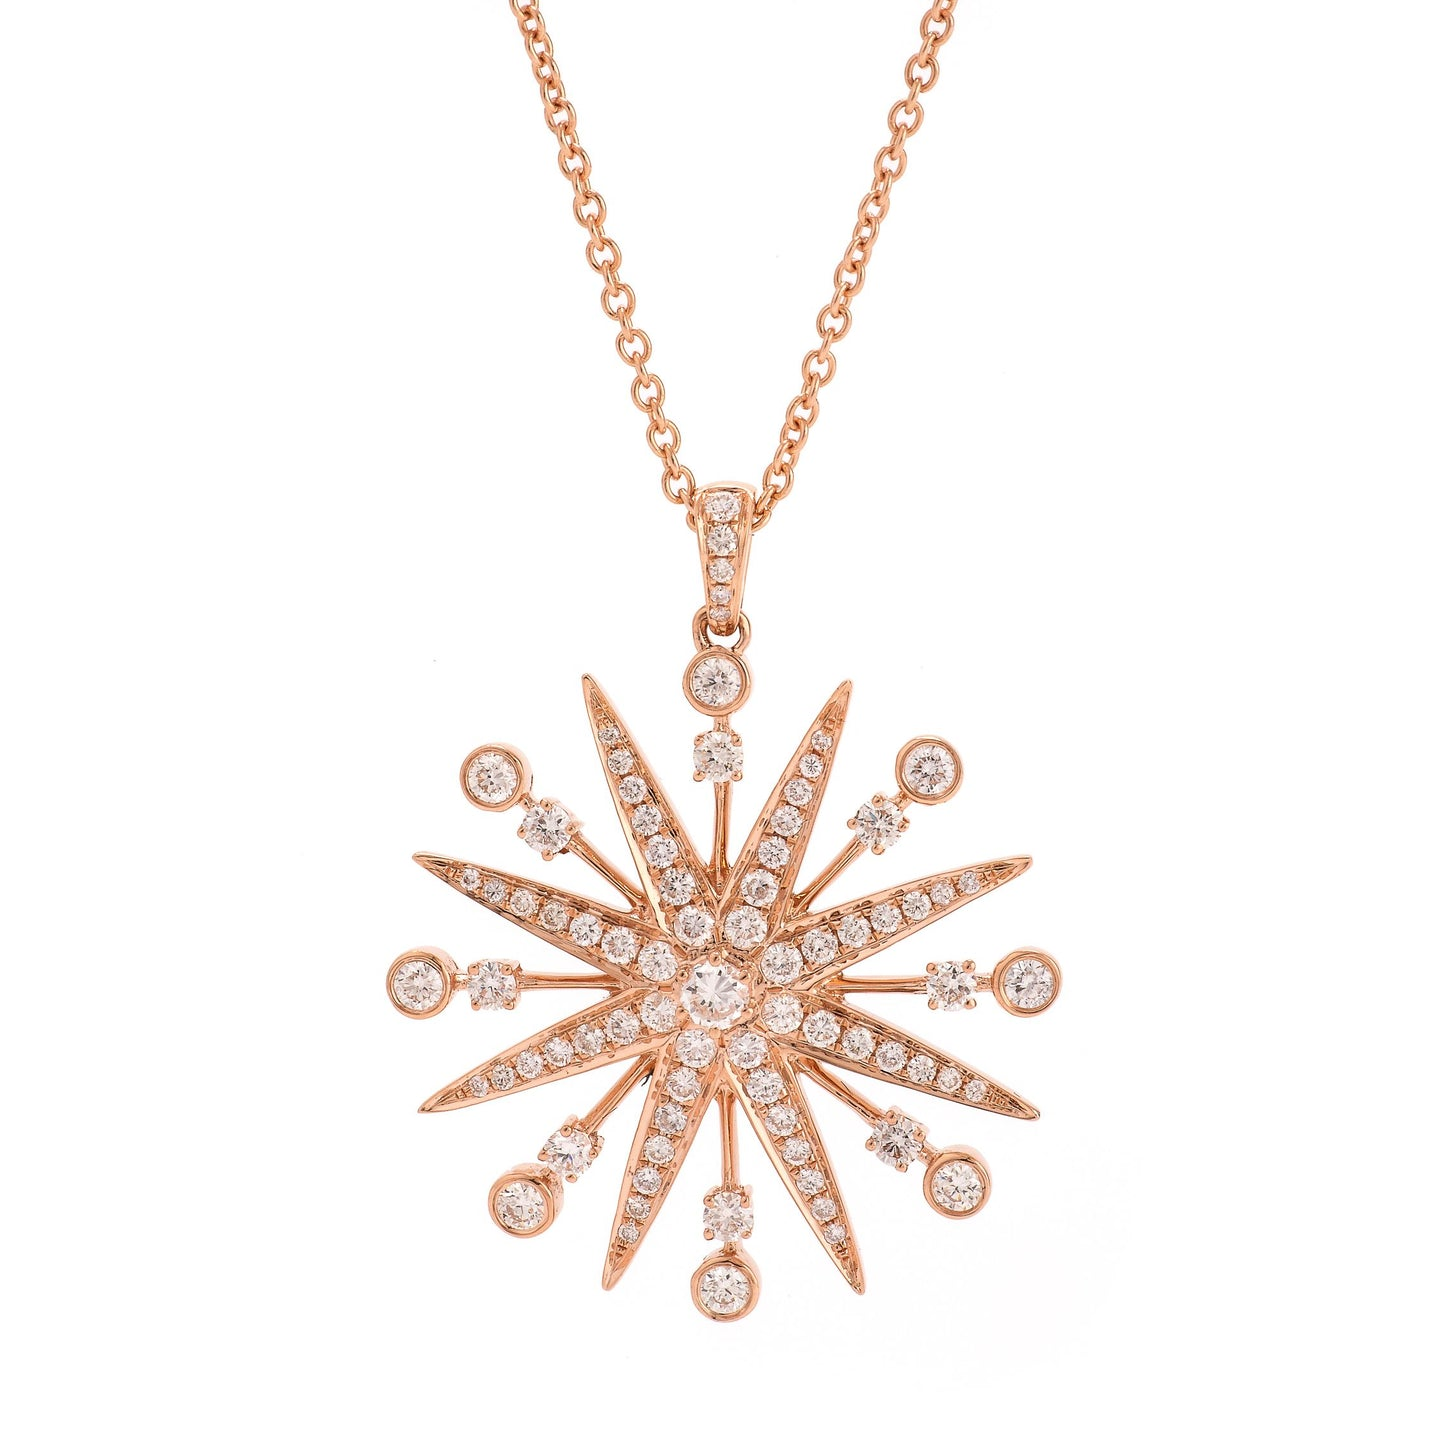 Starburst Pendant Necklace - Best & Co.